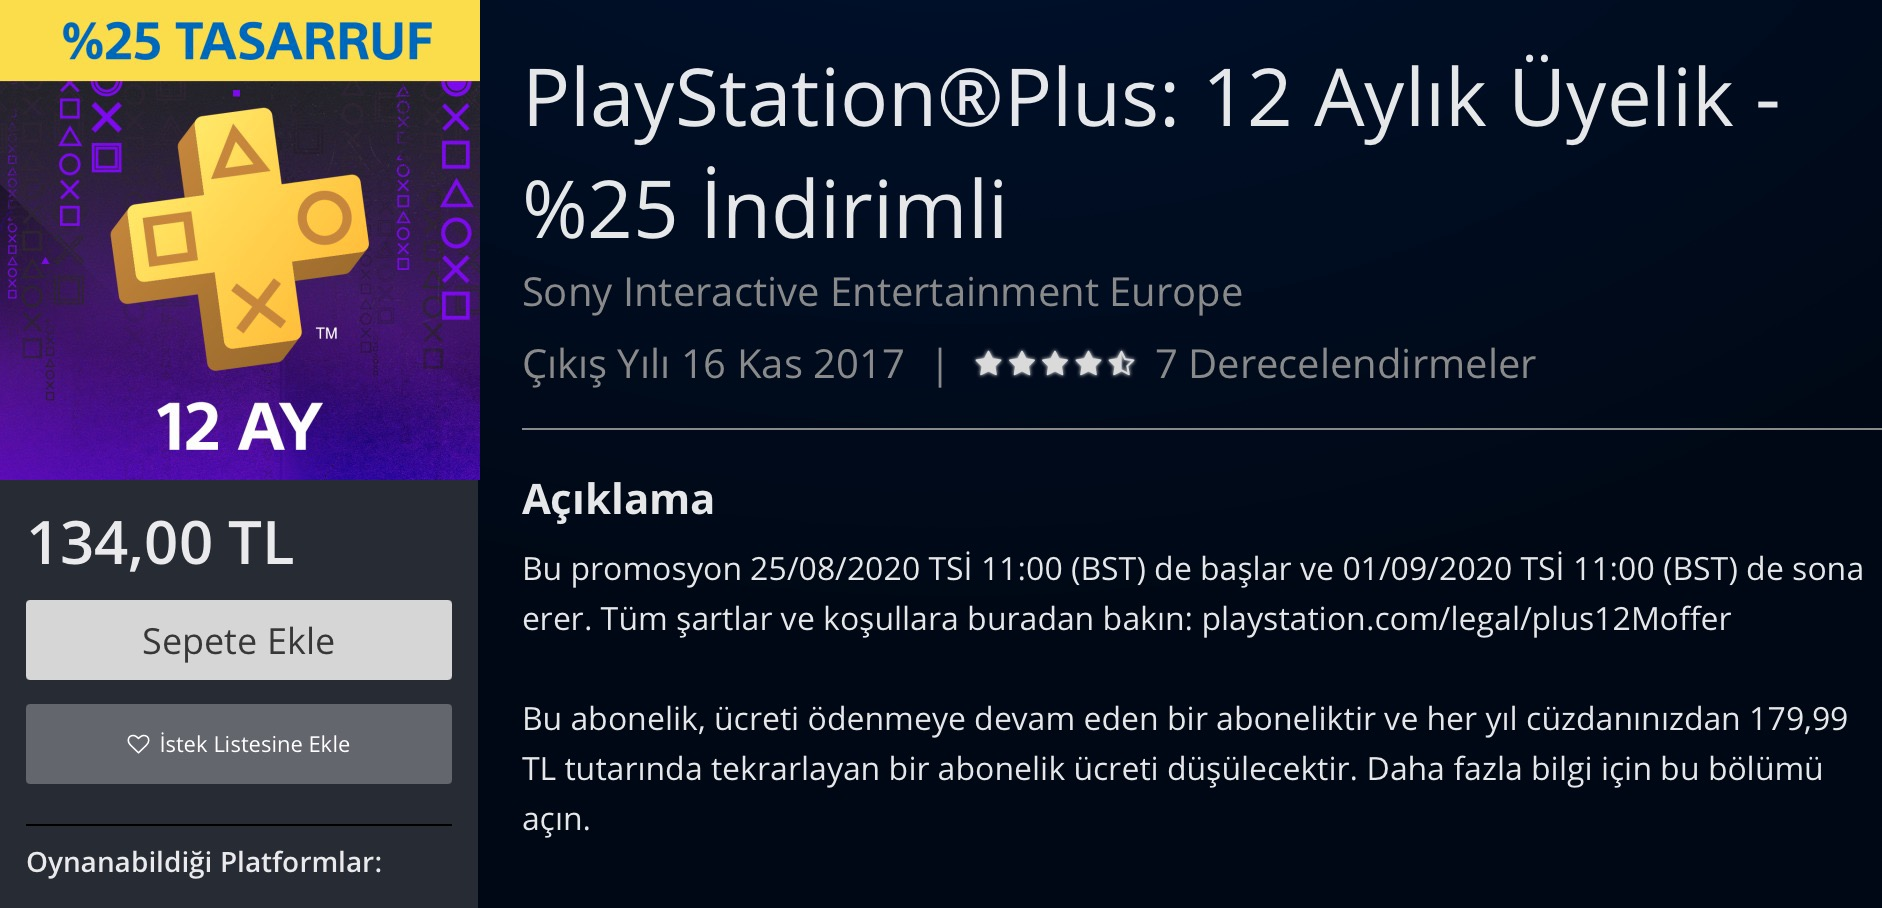 PS Plus Türkiye